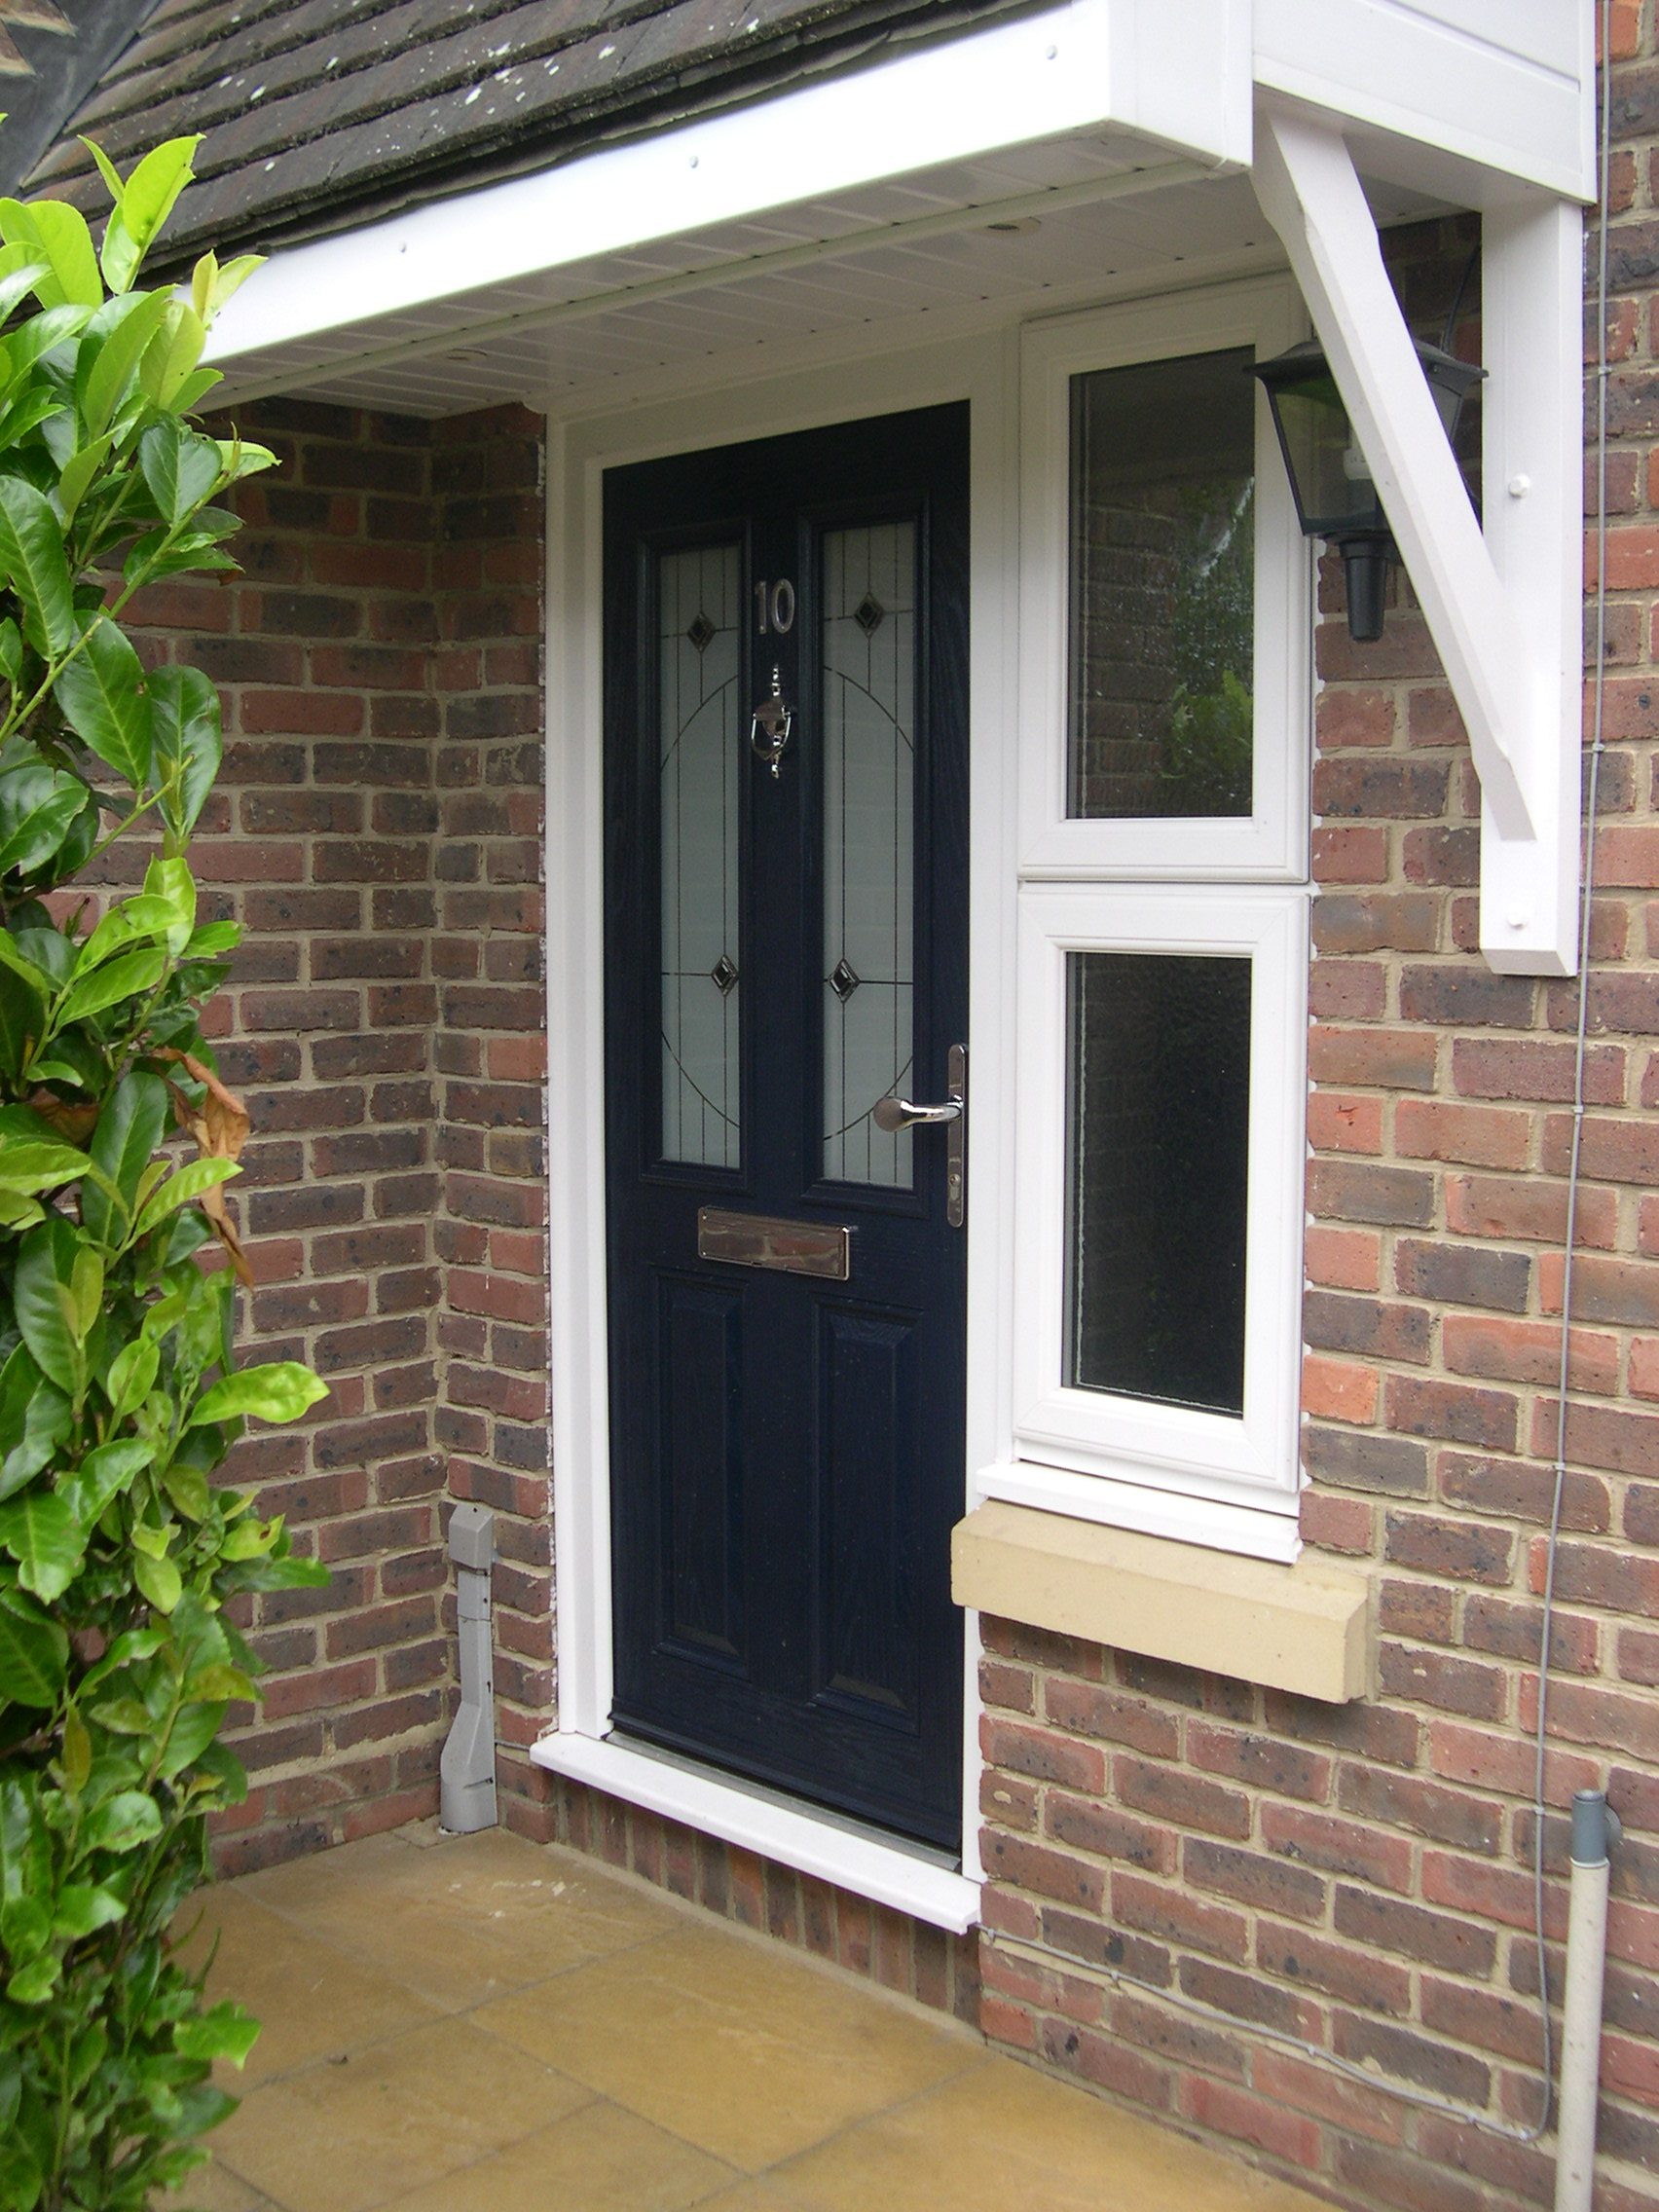 New windows doors jcs external solutions for Porch windows and doors